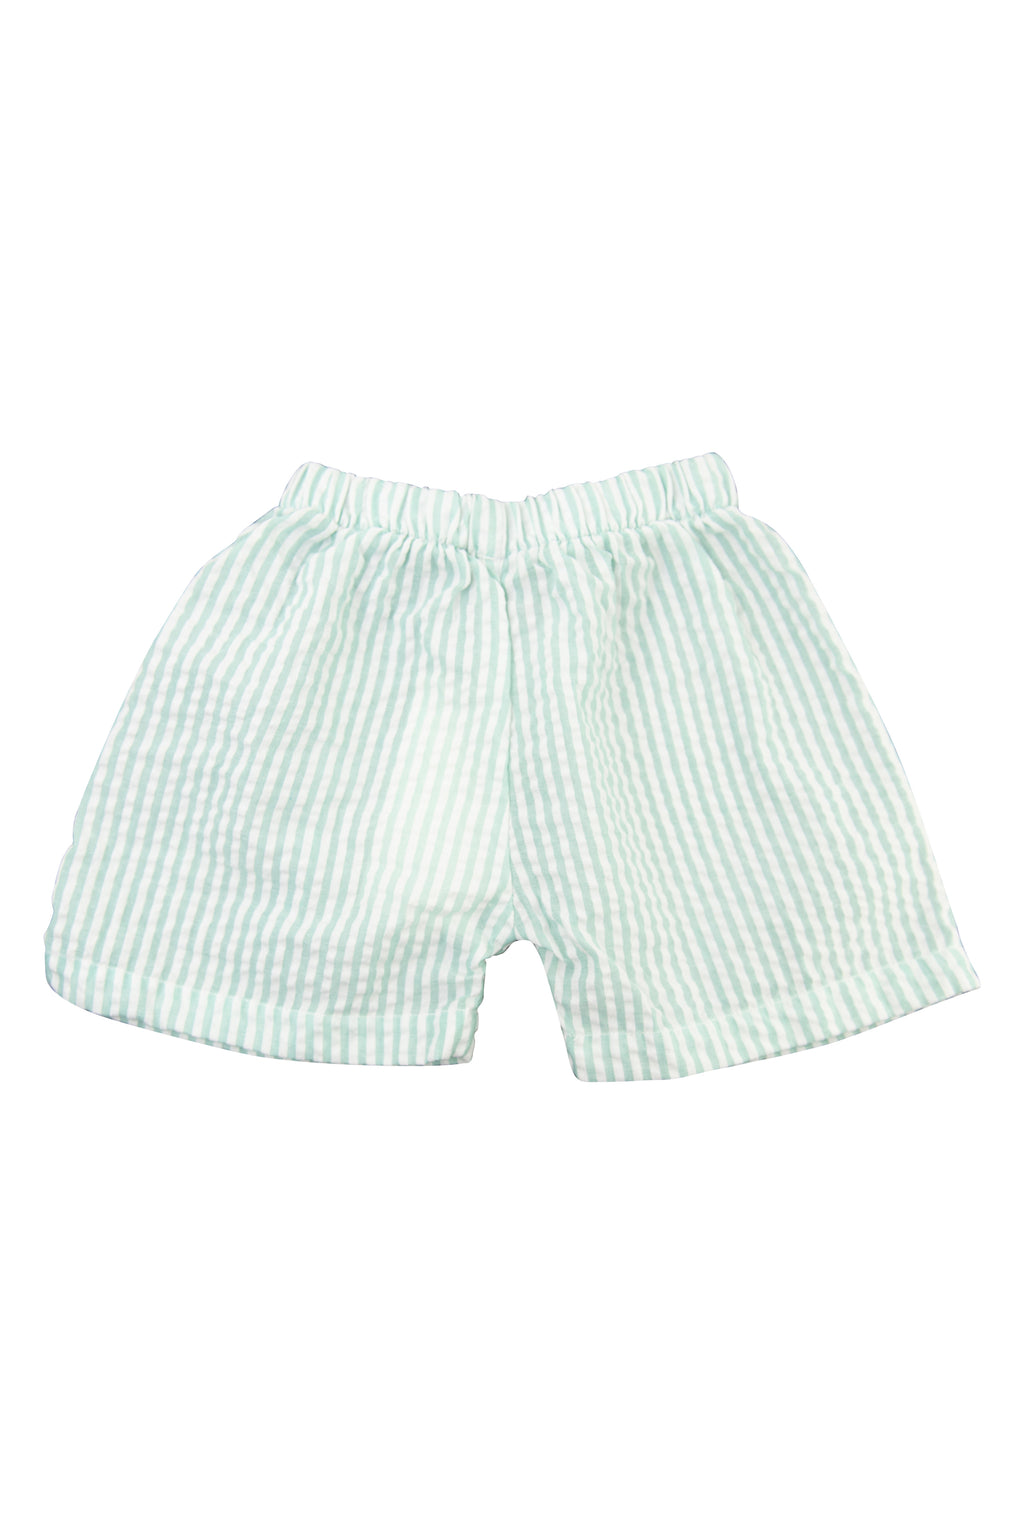 Boys Mint Seersucker Shorts